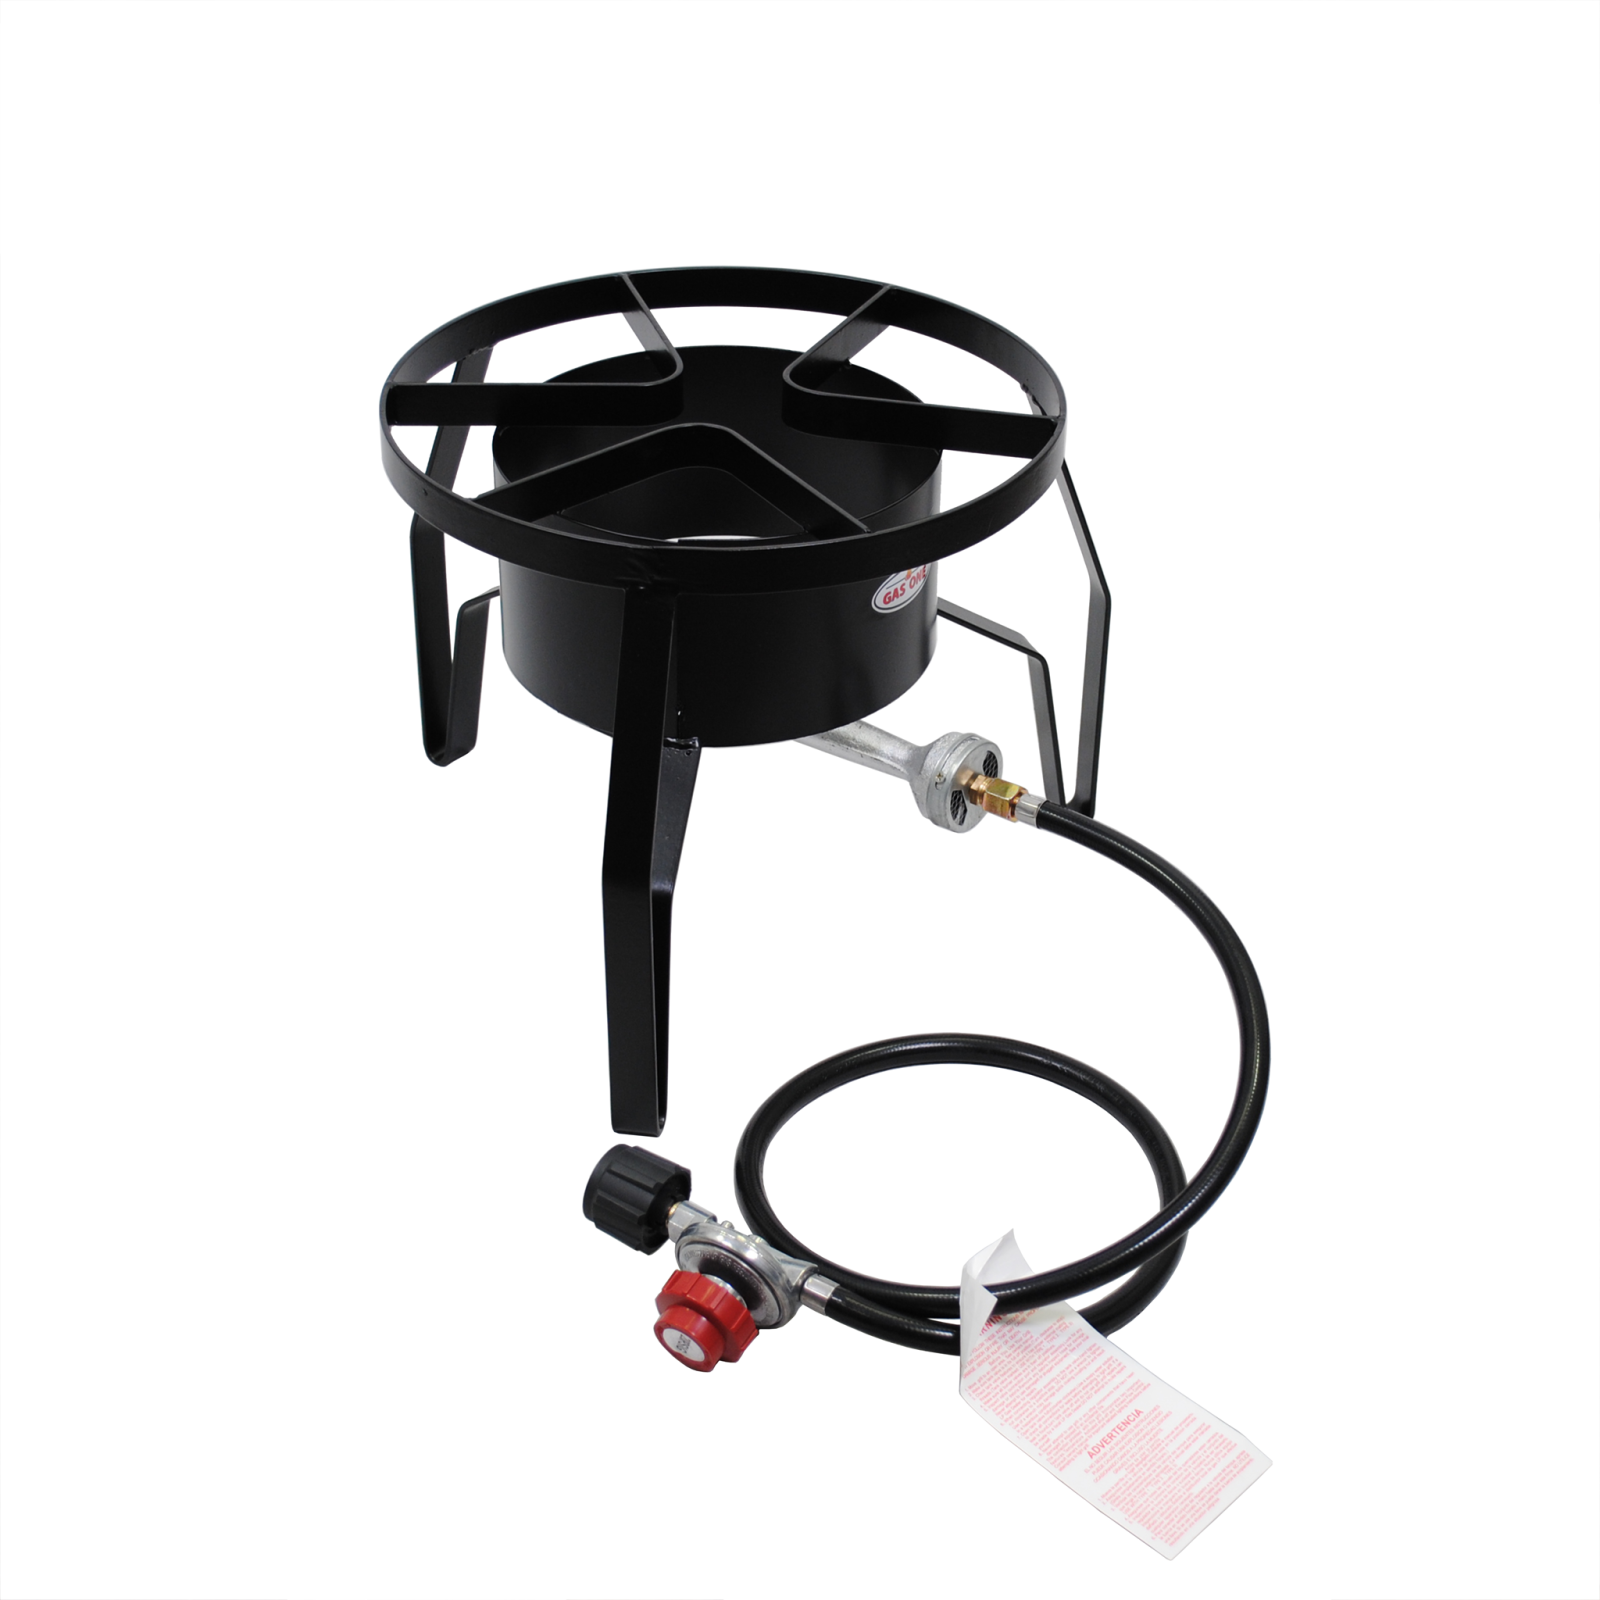 Heavy Duty Portable Propane Single High Pressure Burner Outdoor Round Cooker/ Camp